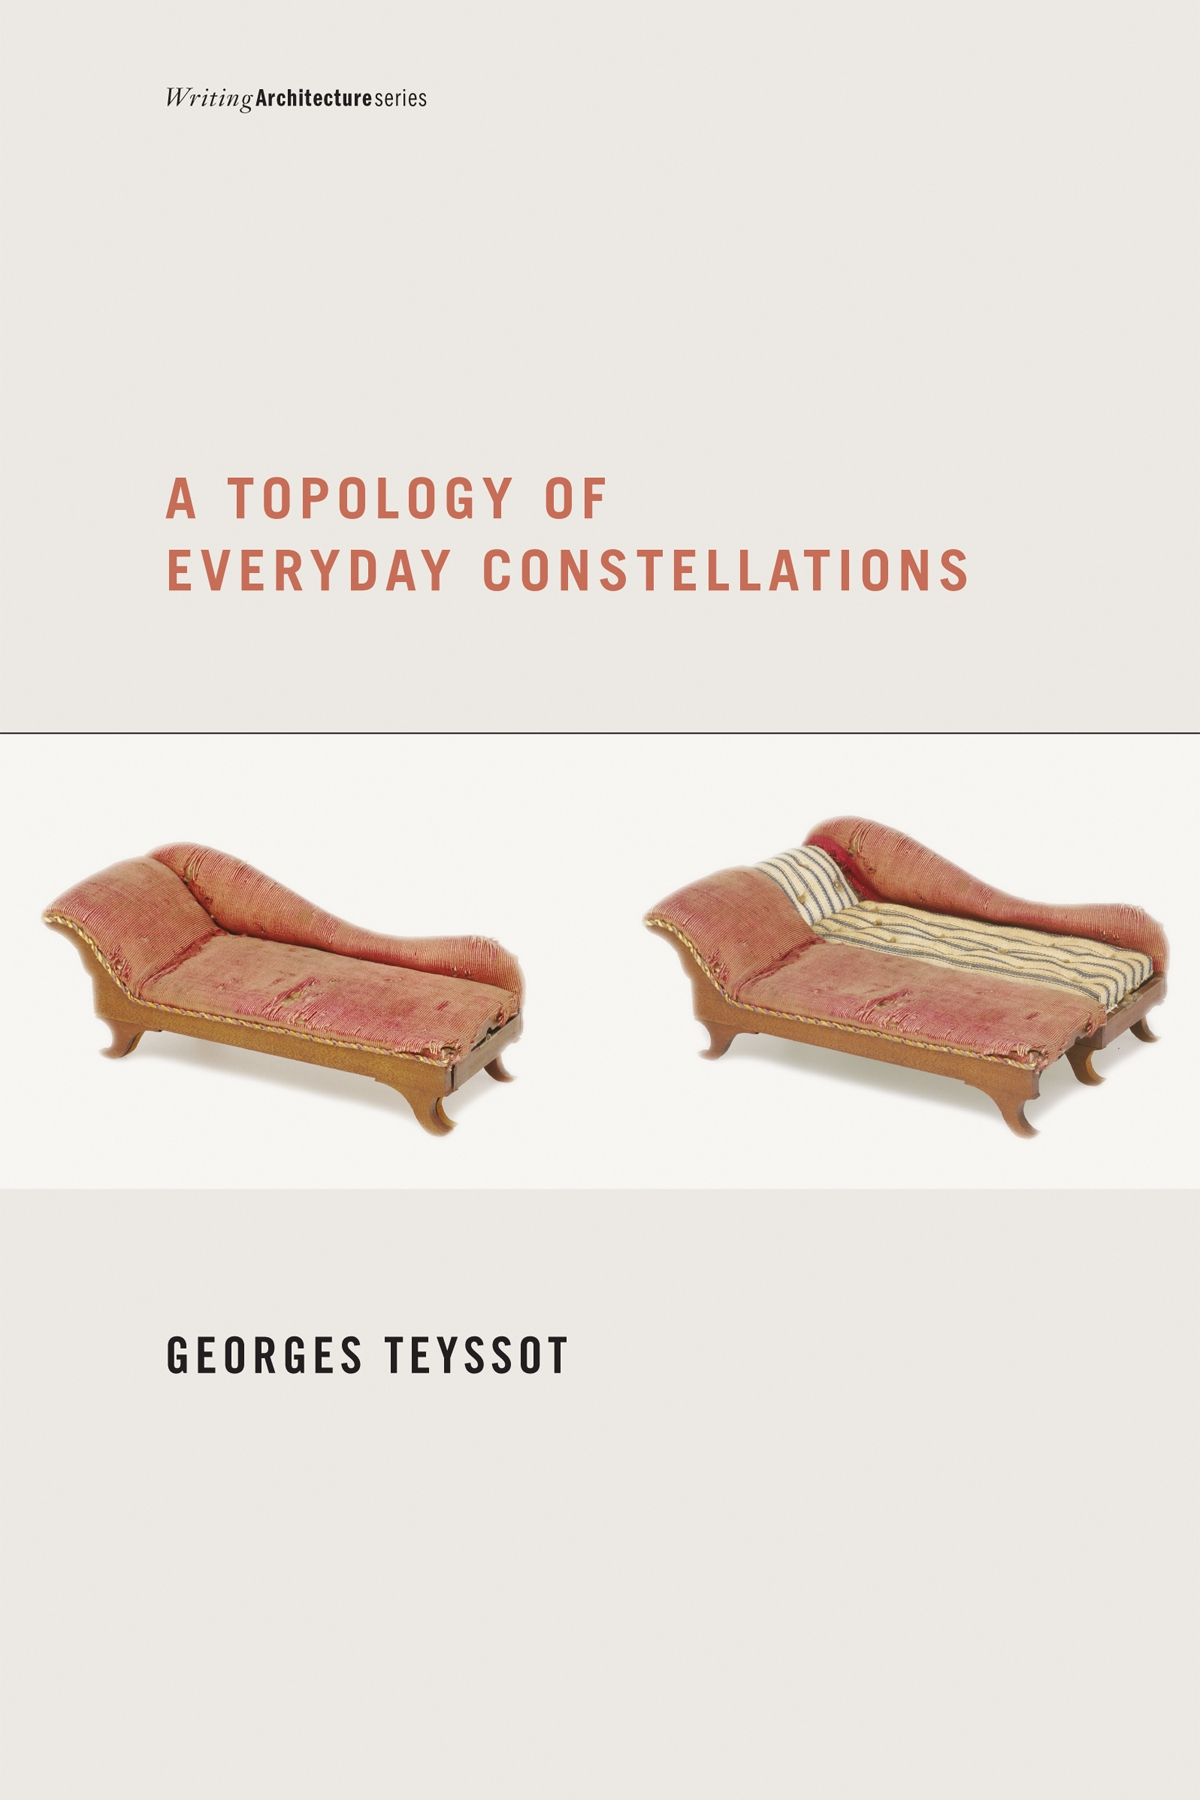 "A Topology of Everyday Constellations  by Georges Teyssot  ""One of the six best books of 2011"" –  Architect  magazine  Today, spaces no longer represent a bourgeois haven; nor are they the sites of a classical harmony between work and leisure, private and public, the local and the global. The house is not merely a home but a position for negotiations with multiple spheres – the technological as well as the physical and the psychological. In  A Topology of Everyday Constellations , Georges Teyssot considers the intrusion of the public sphere into private space, and the blurring of notions of interior, privacy, and intimacy in our societies. He proposes that we rethink design in terms of a new definition of the practices of everyday life."